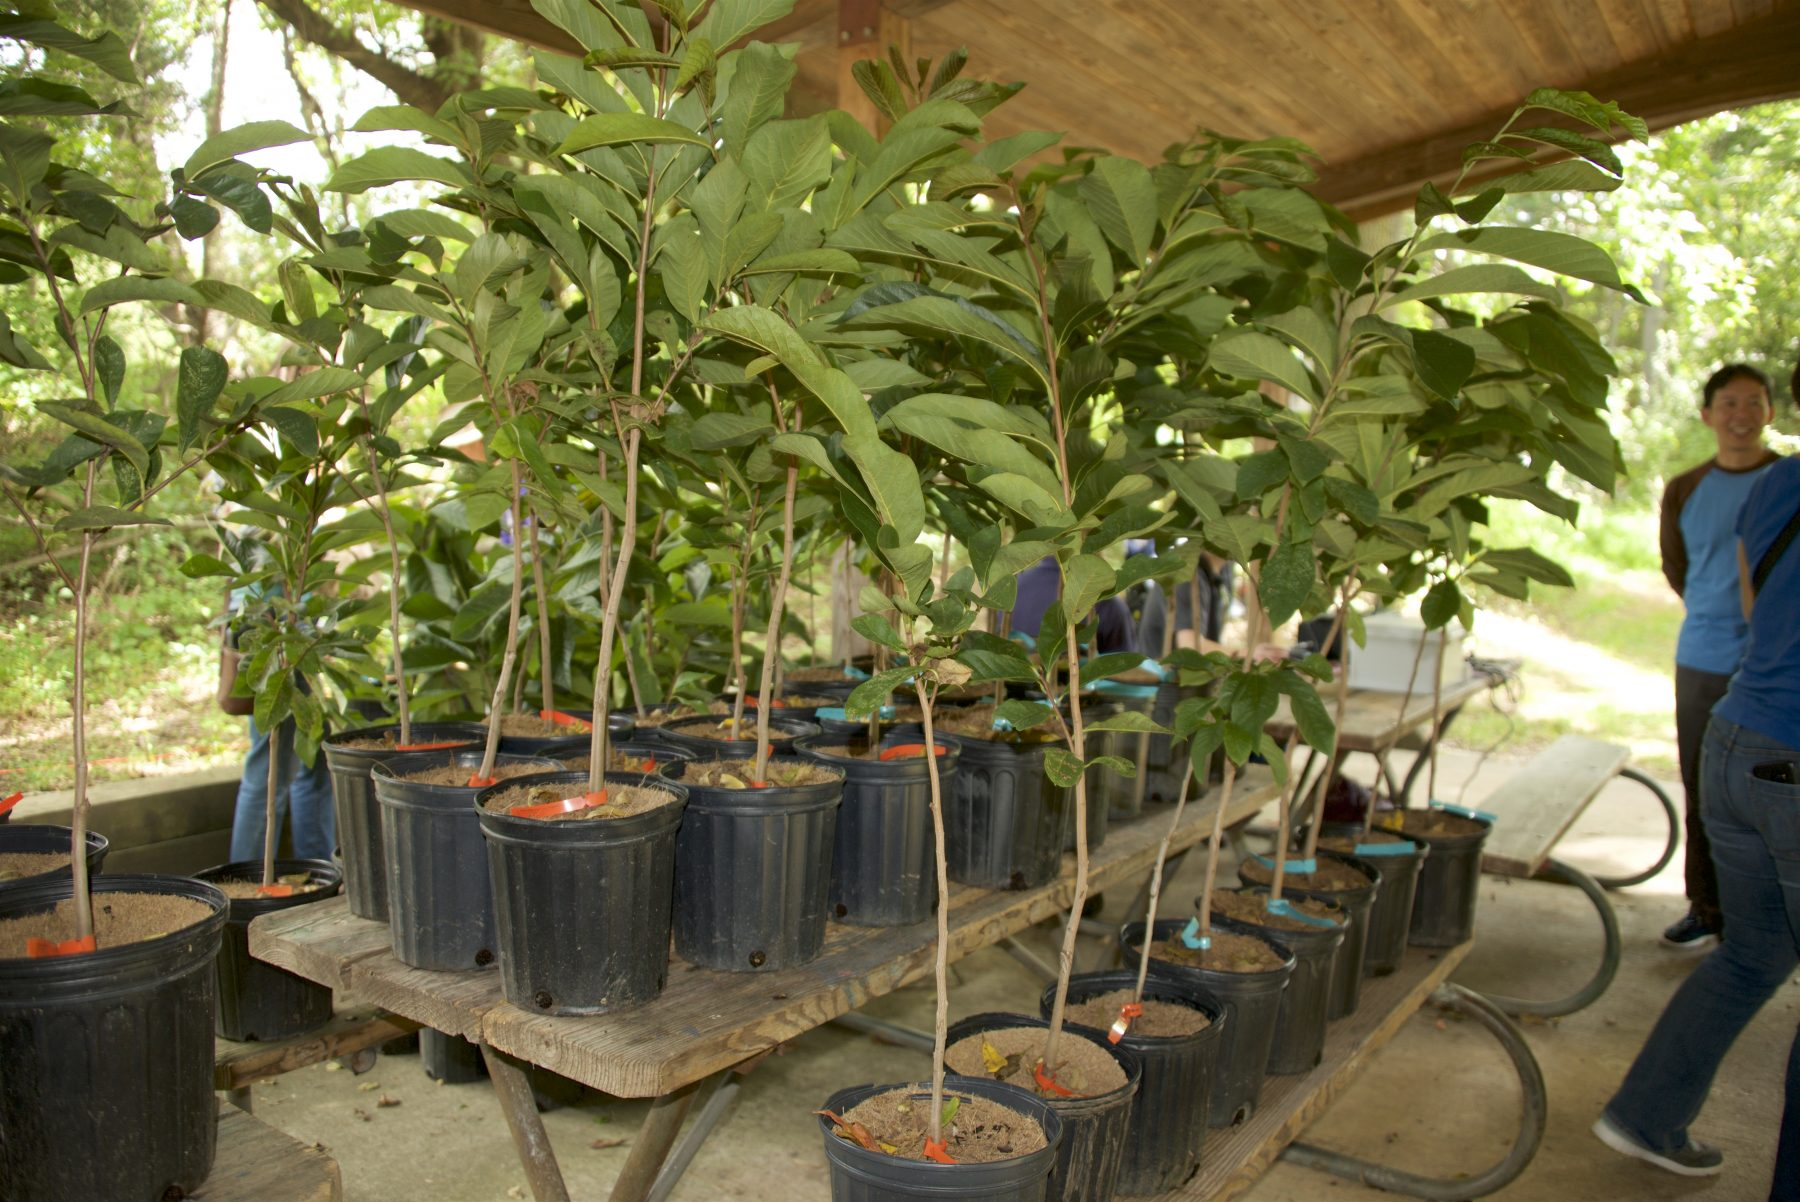 Rows of Pawpaw trees in pots, for sale at the festival